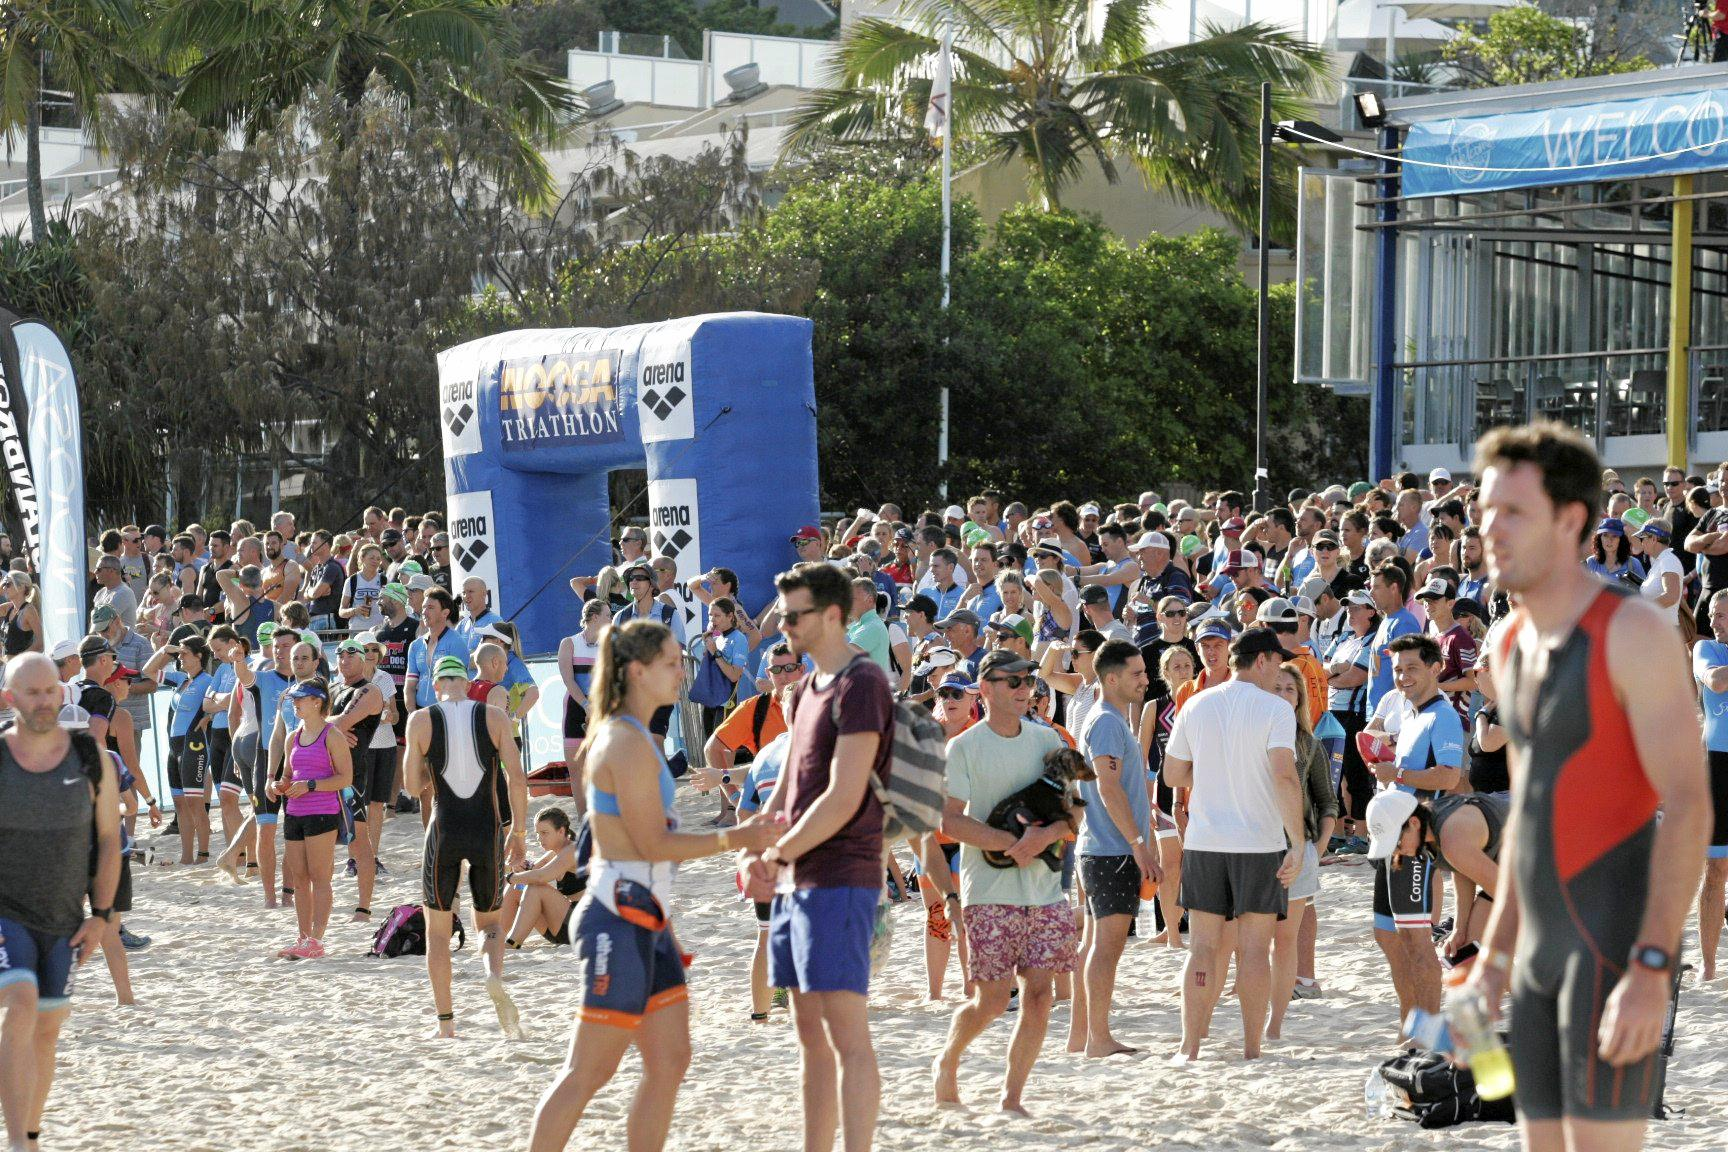 Spectators and athletes enjoy the 2016 Noosa Triathlon.Overview of start of swim leg at Main Beach Noosa.